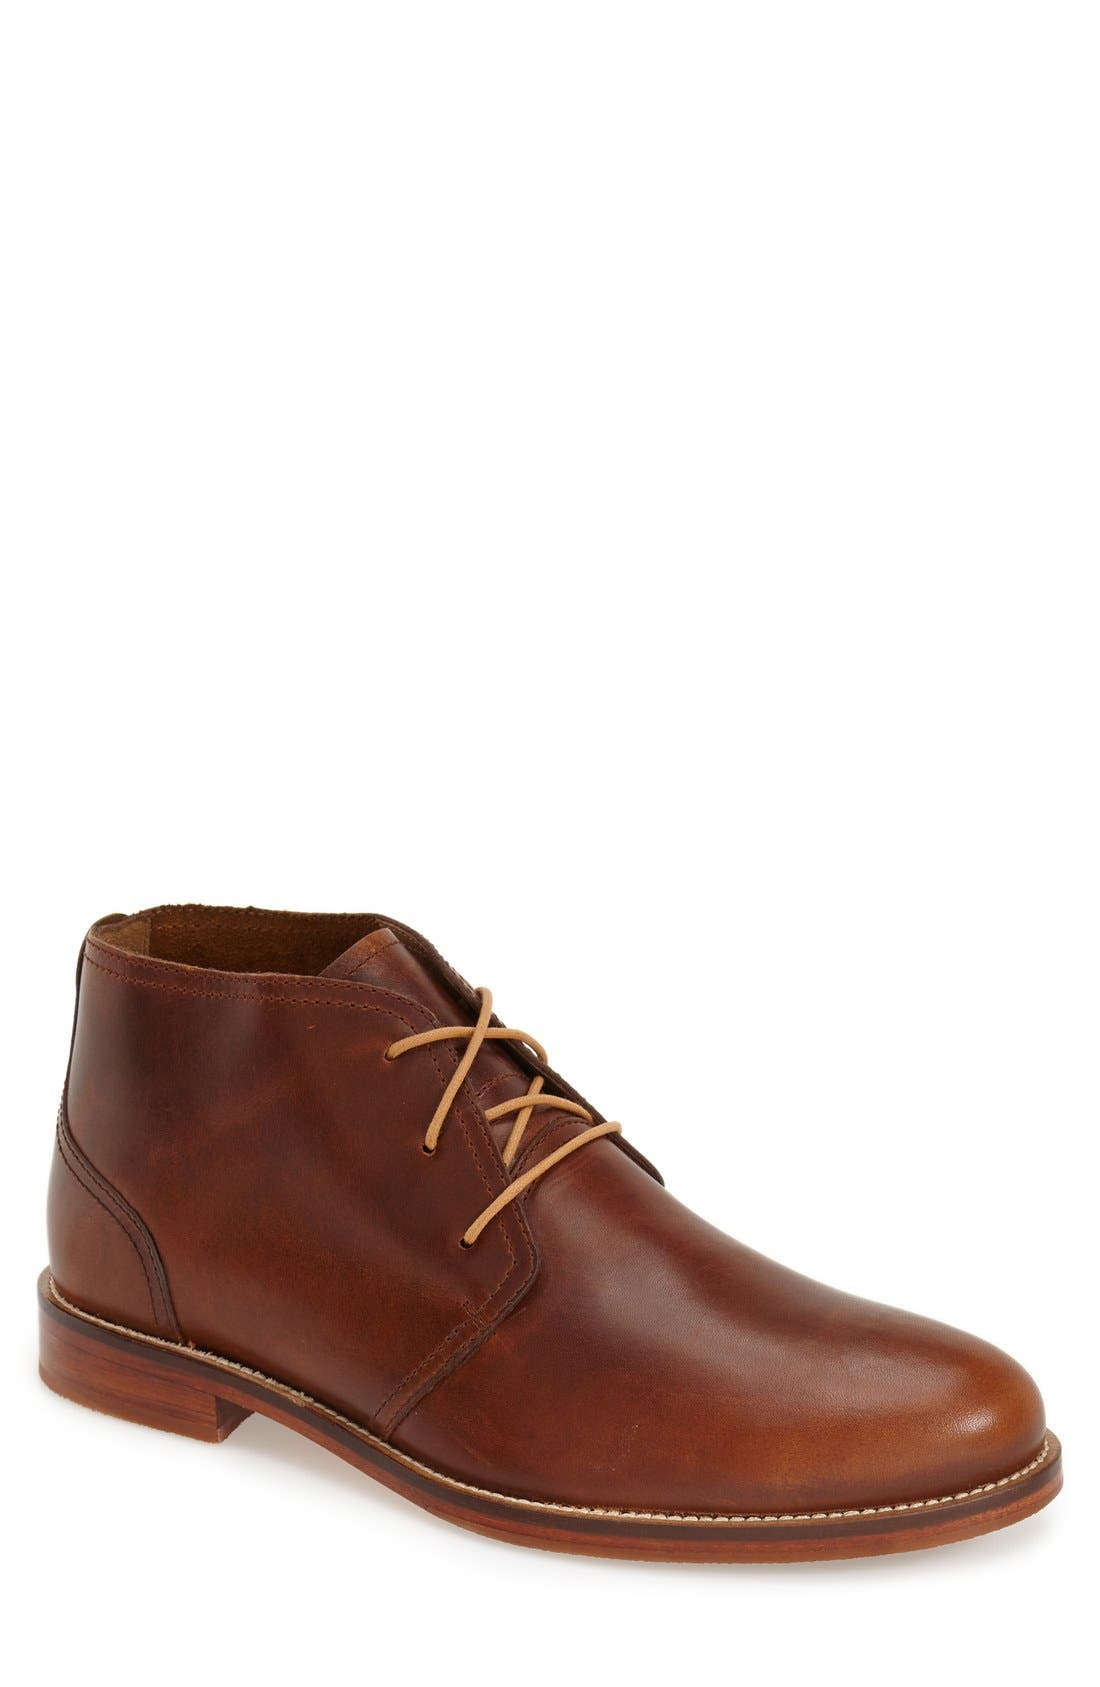 J SHOES 'Monarch Plus' Chukka Boot (Men)